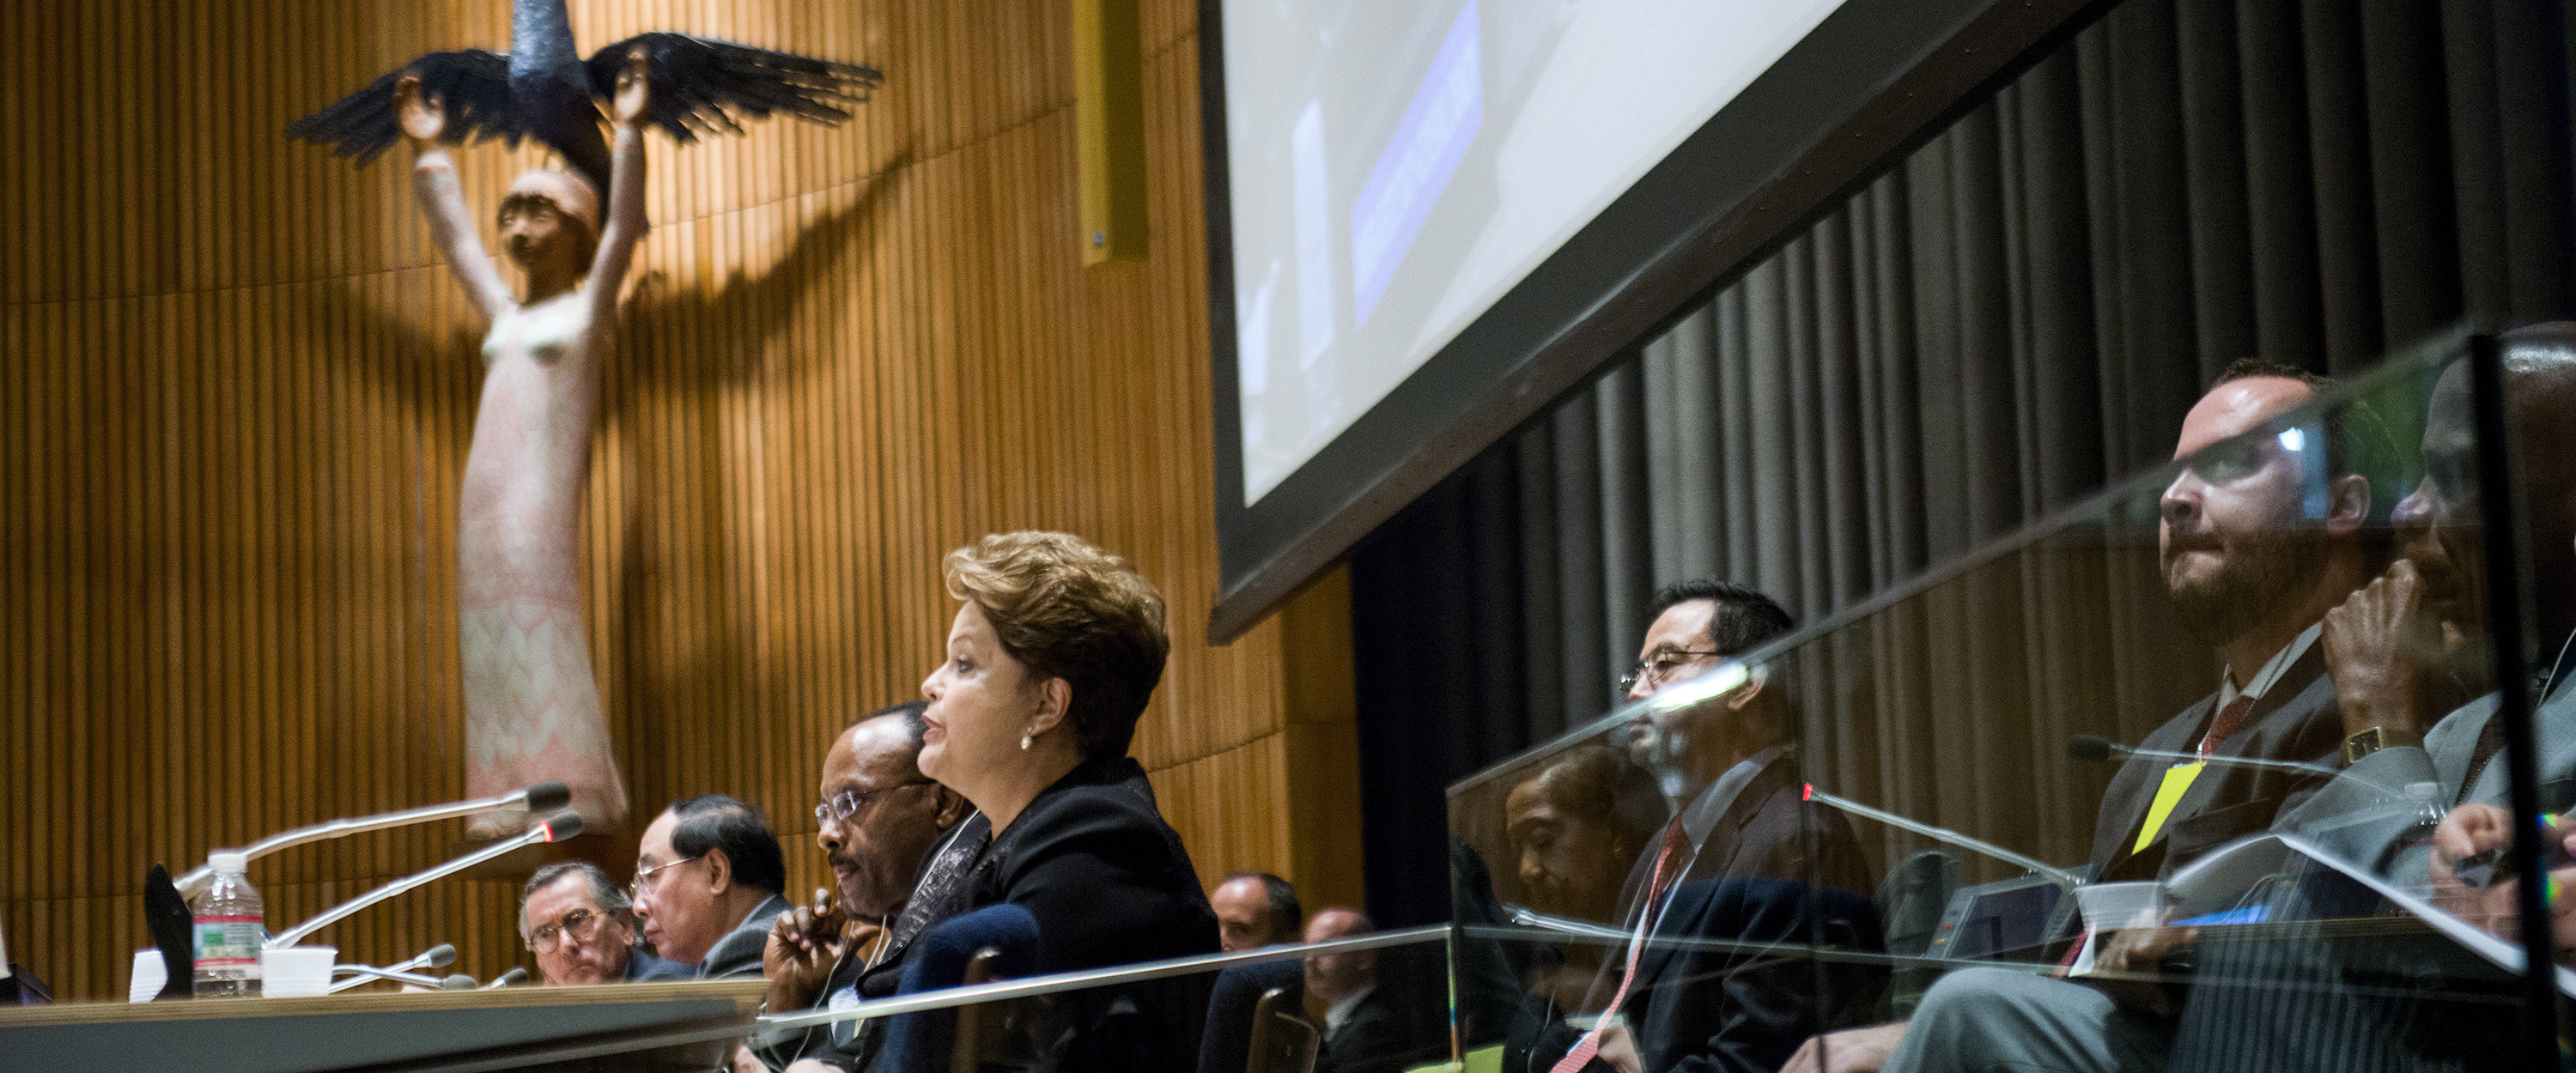 President of Brazil speaks during the Inaugural Meeting of the High-level Political Forum (HLPF) on Sustainable Development (Trusteeship Council Chamber, CB)